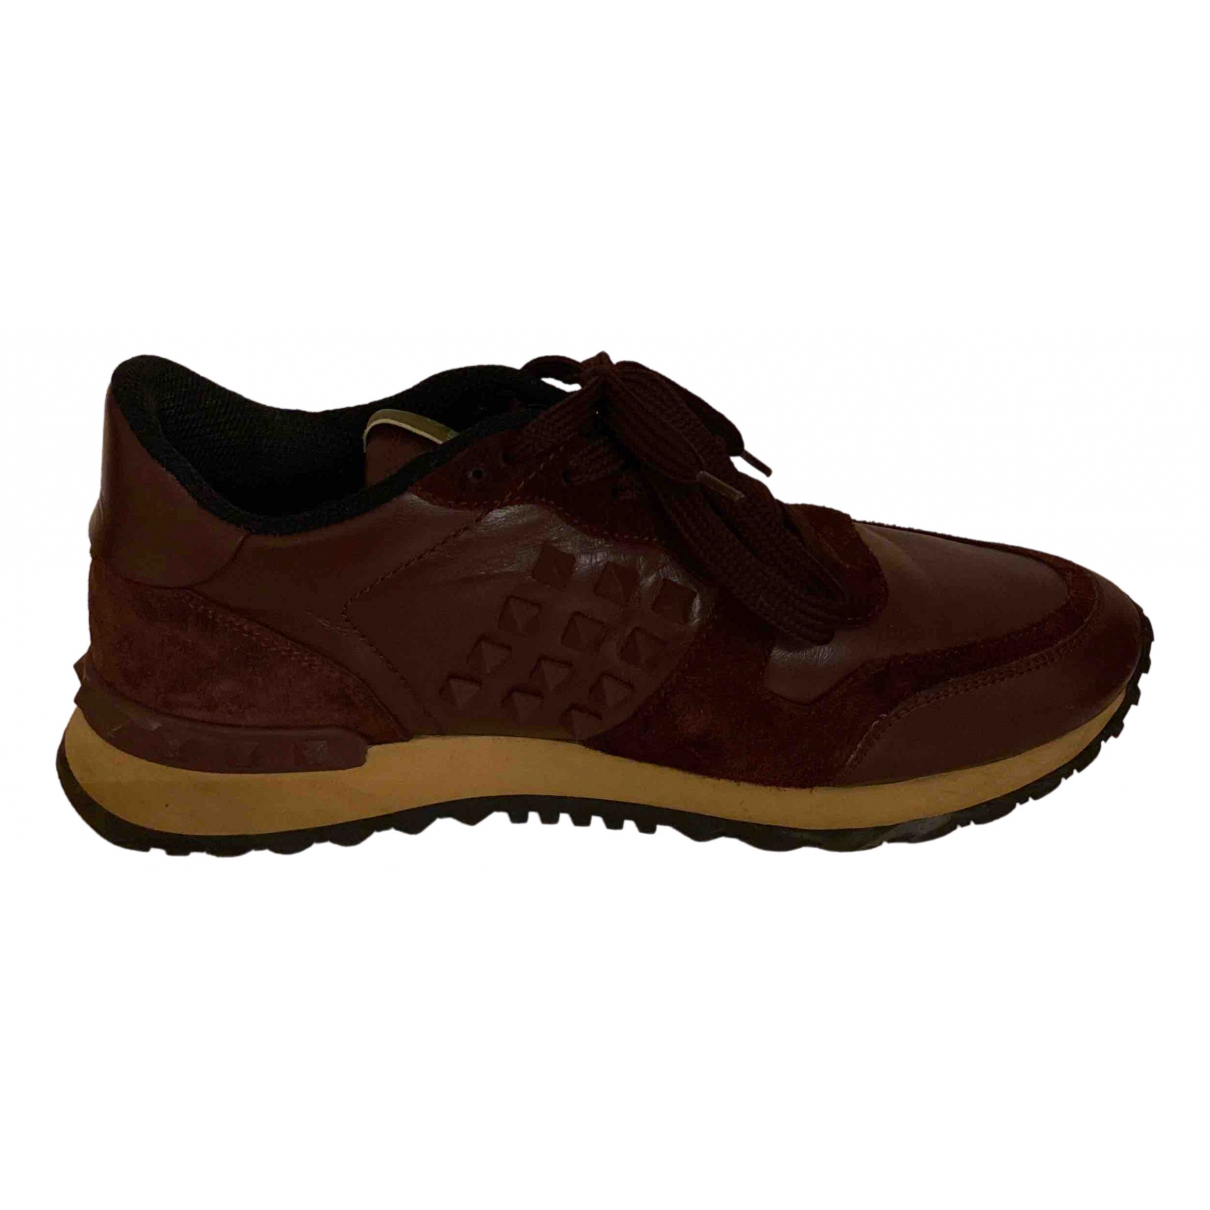 Valentino Garavani Rockrunner Burgundy Leather Trainers for Women 38 EU